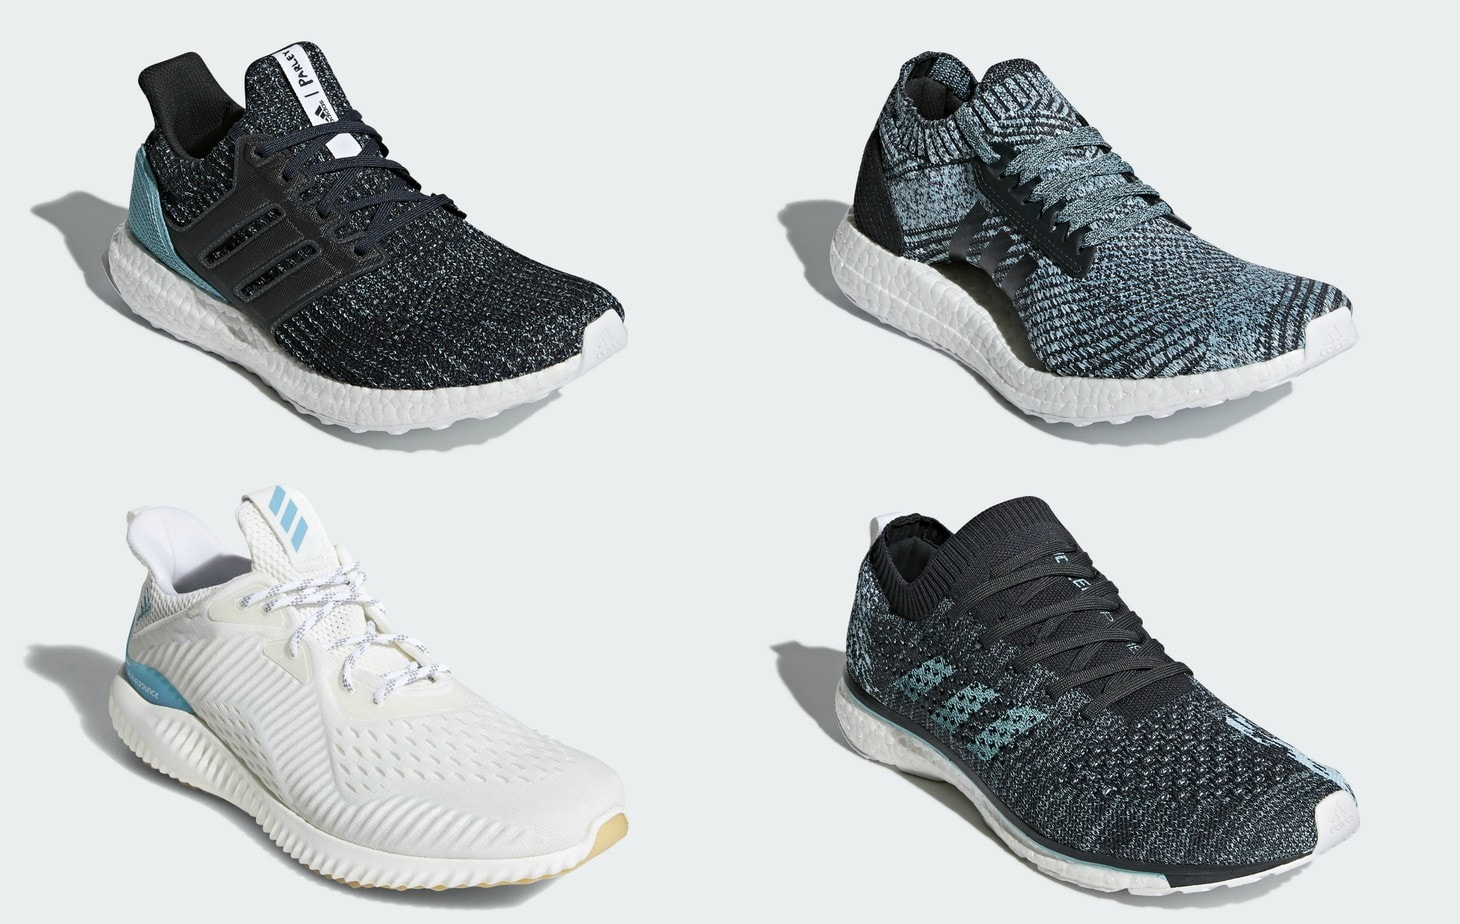 2b8d0bc7d0db5 Parley and adidas have been reenergized by last year s sales numbers in  their quest to save the oceans. Now